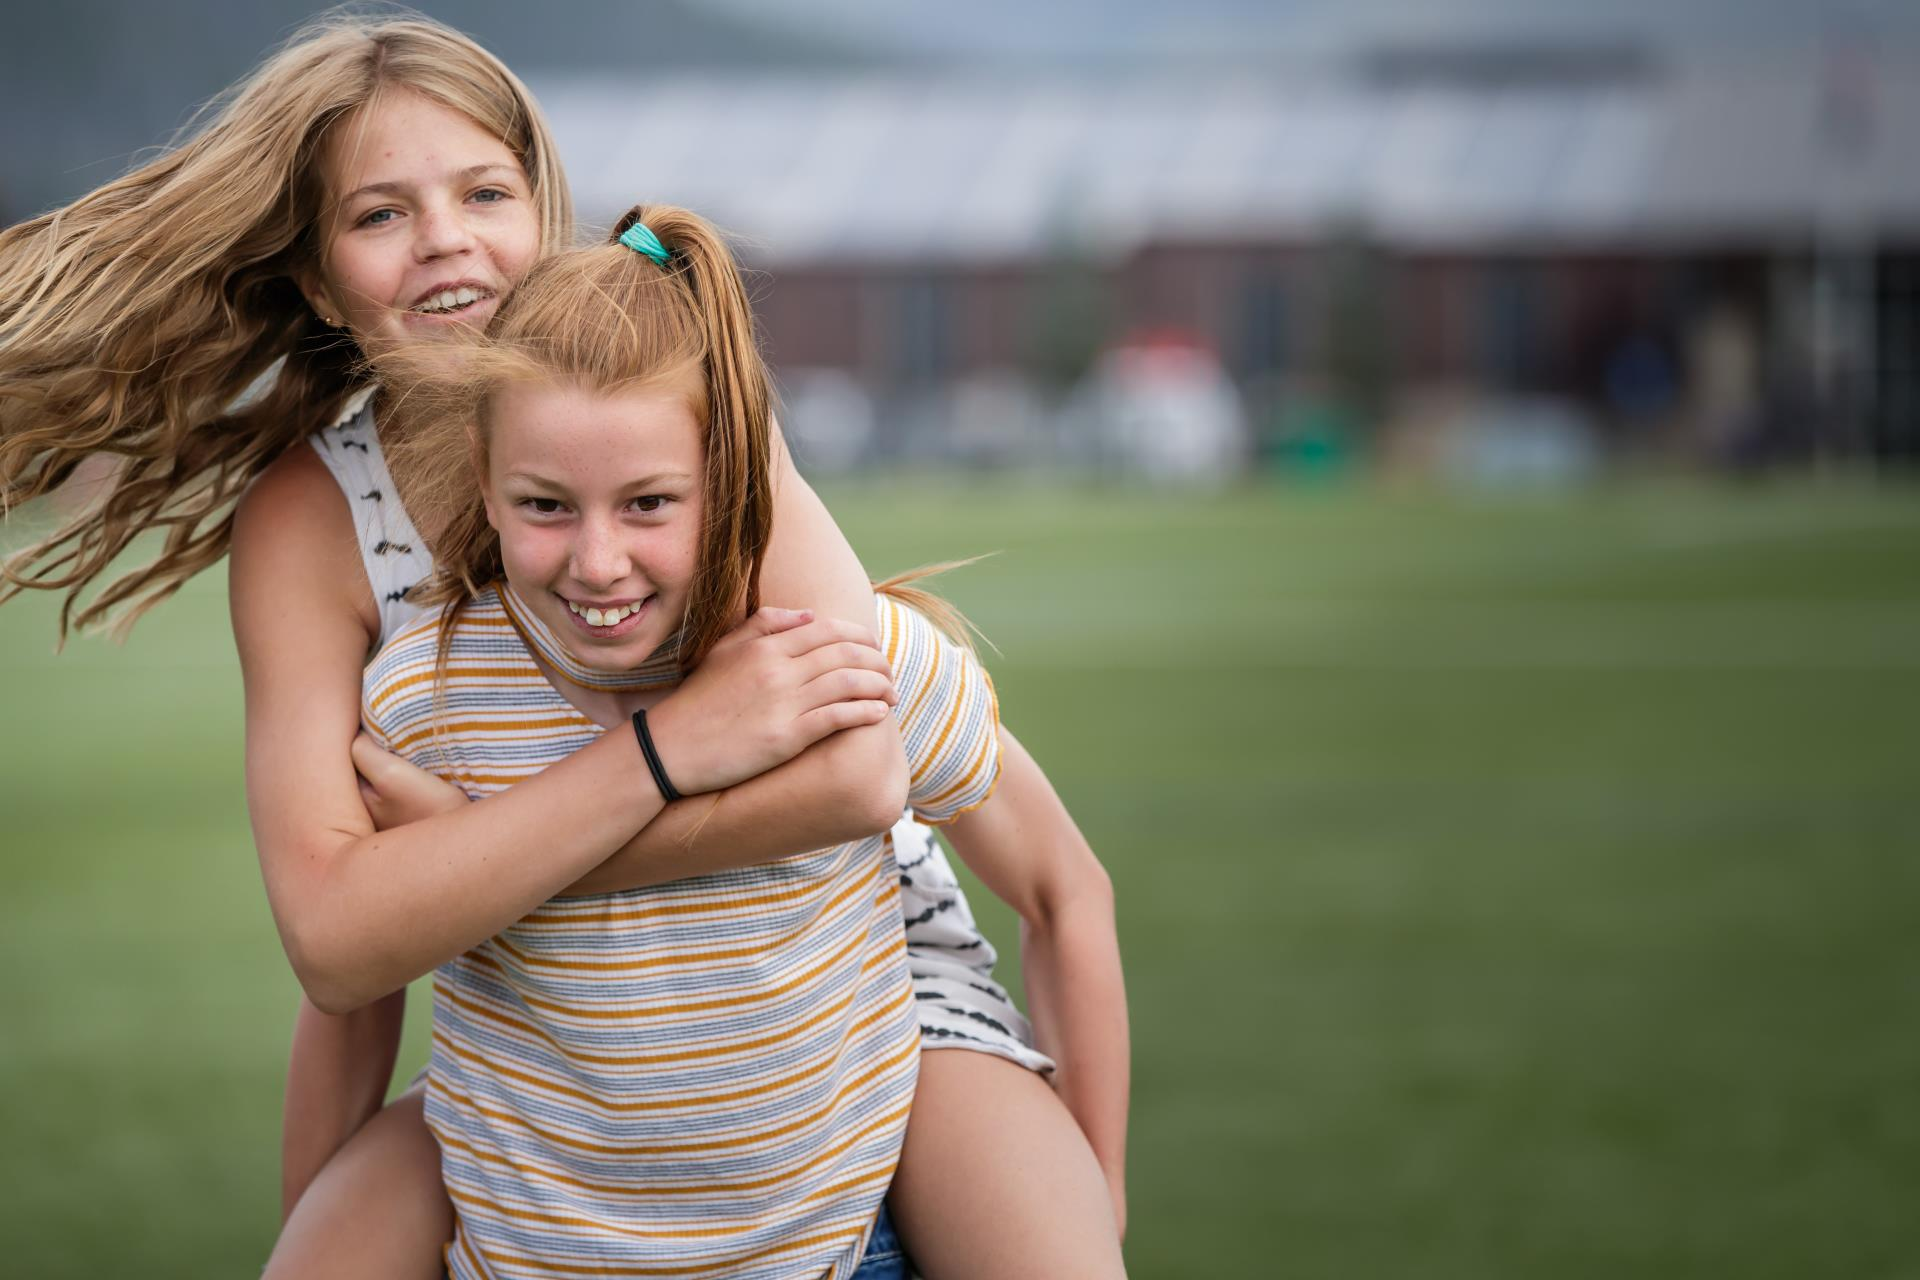 Girl giving piggyback ride to another girl outside on field